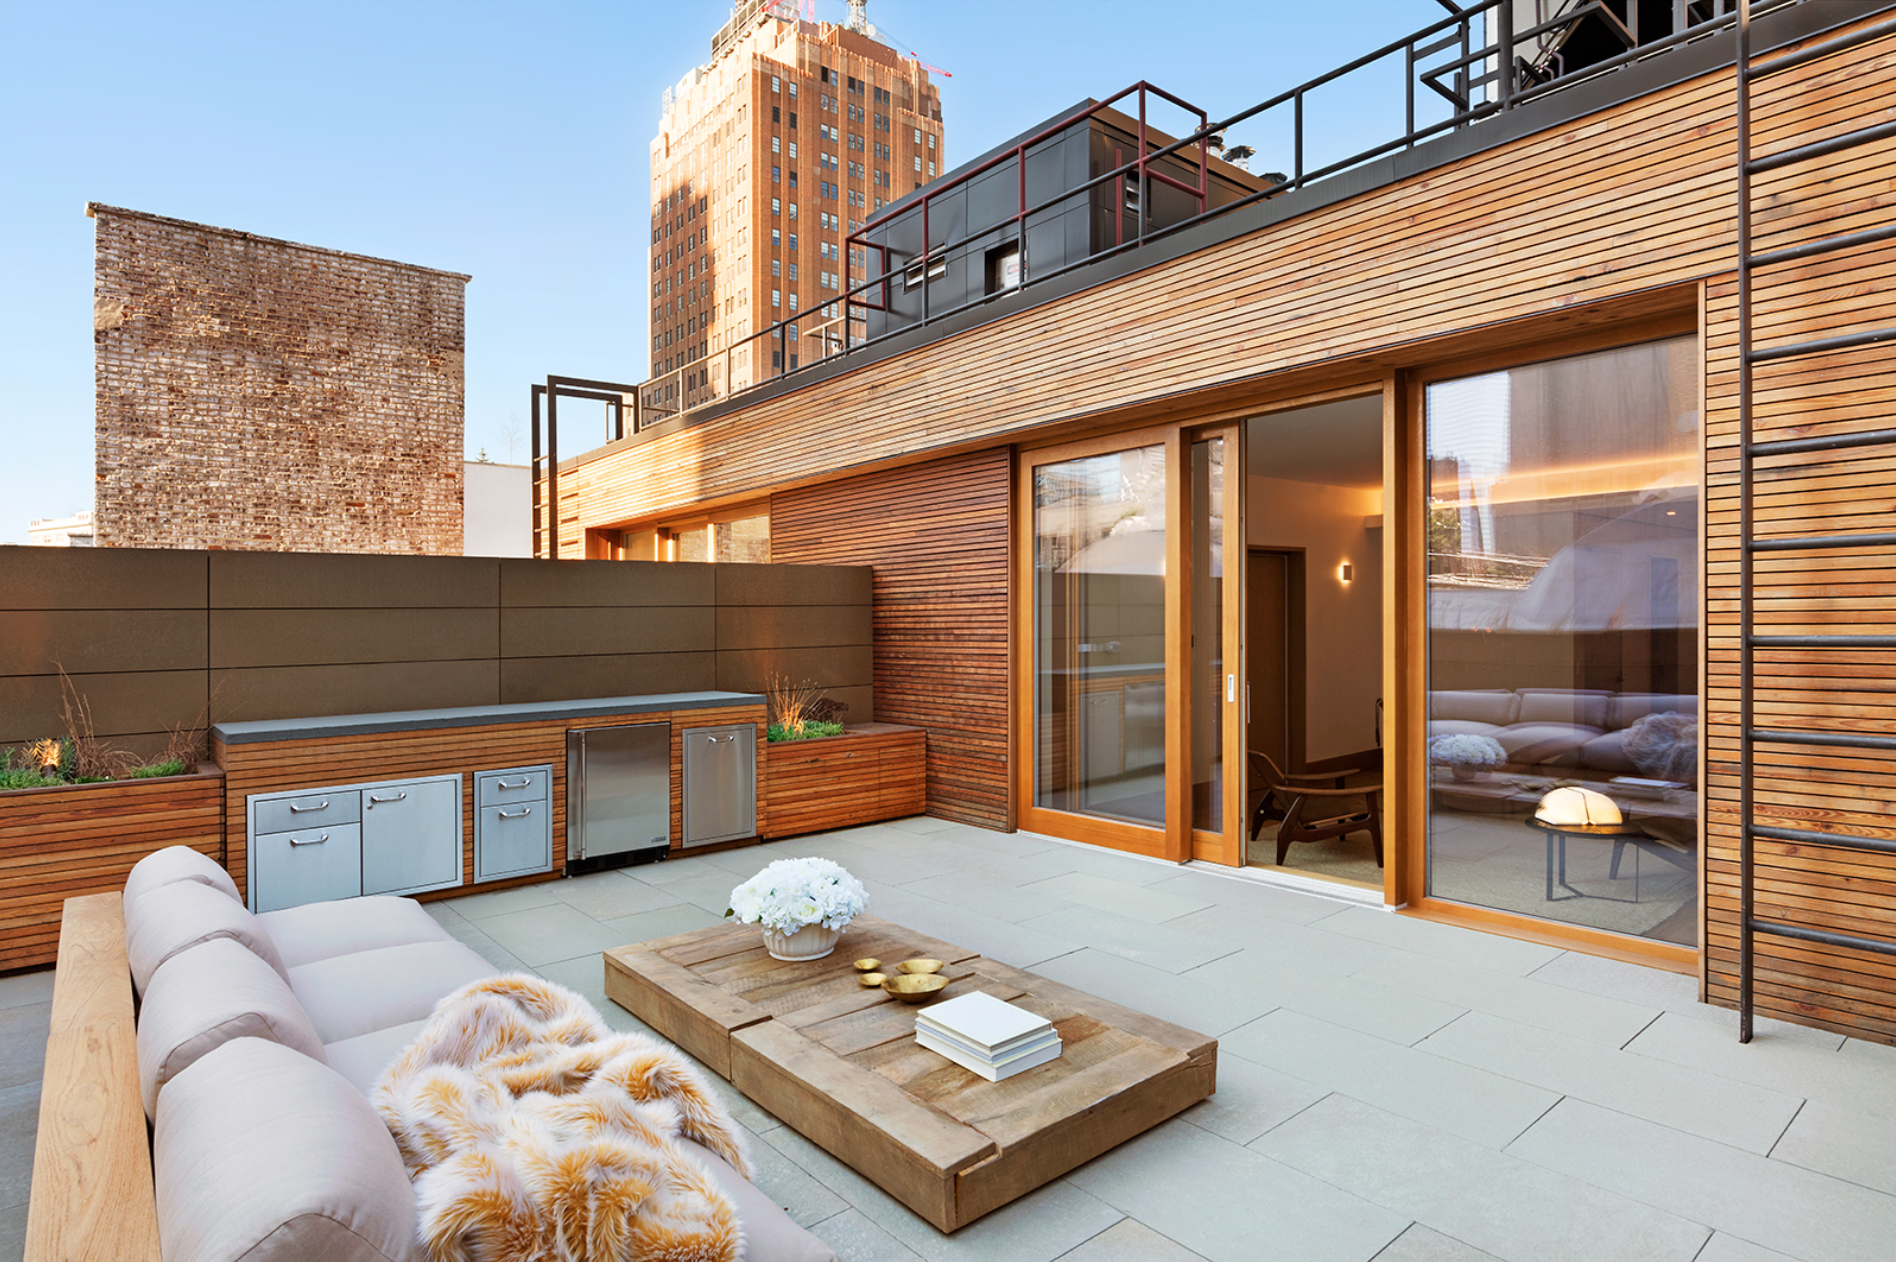 Featured Listing: Kick Back in The Lavish Penthouse at 60 White in TriBeCa Asking $15 Million